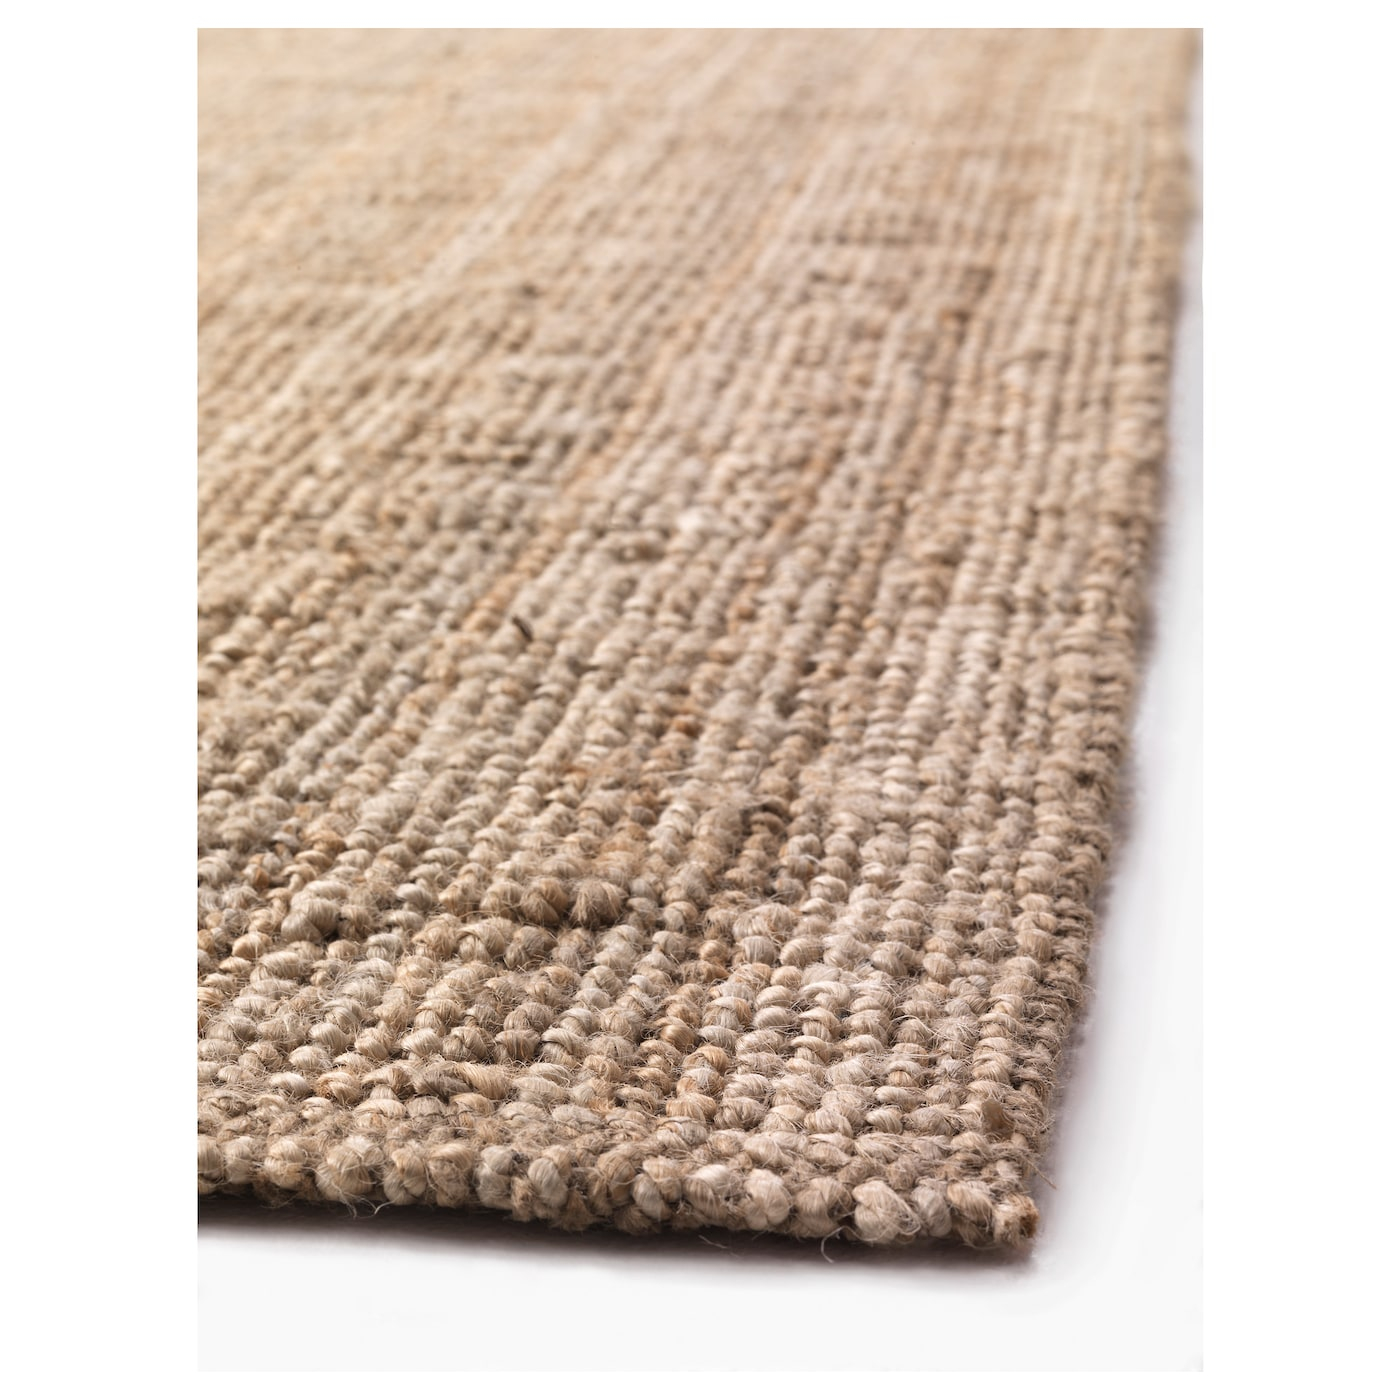 Lohals rug flatwoven natural 200x300 cm ikea for Ikea rugs